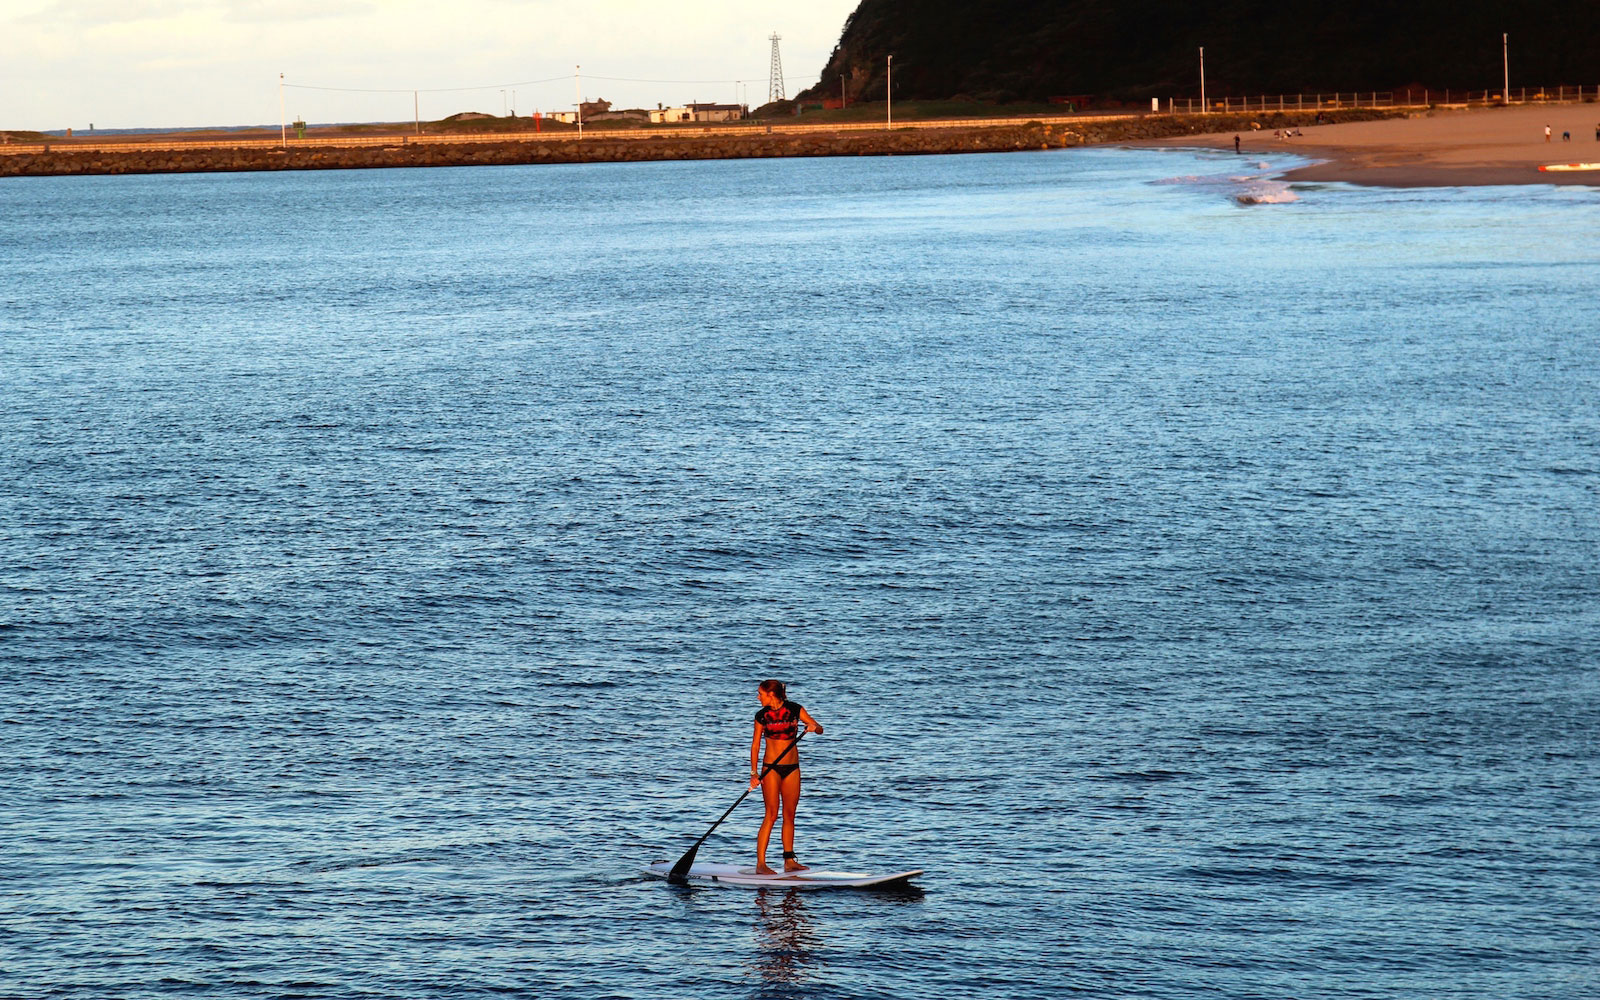 DURBAN0615-Lone-paddle-boarder-on-Golden-Mile.jpg